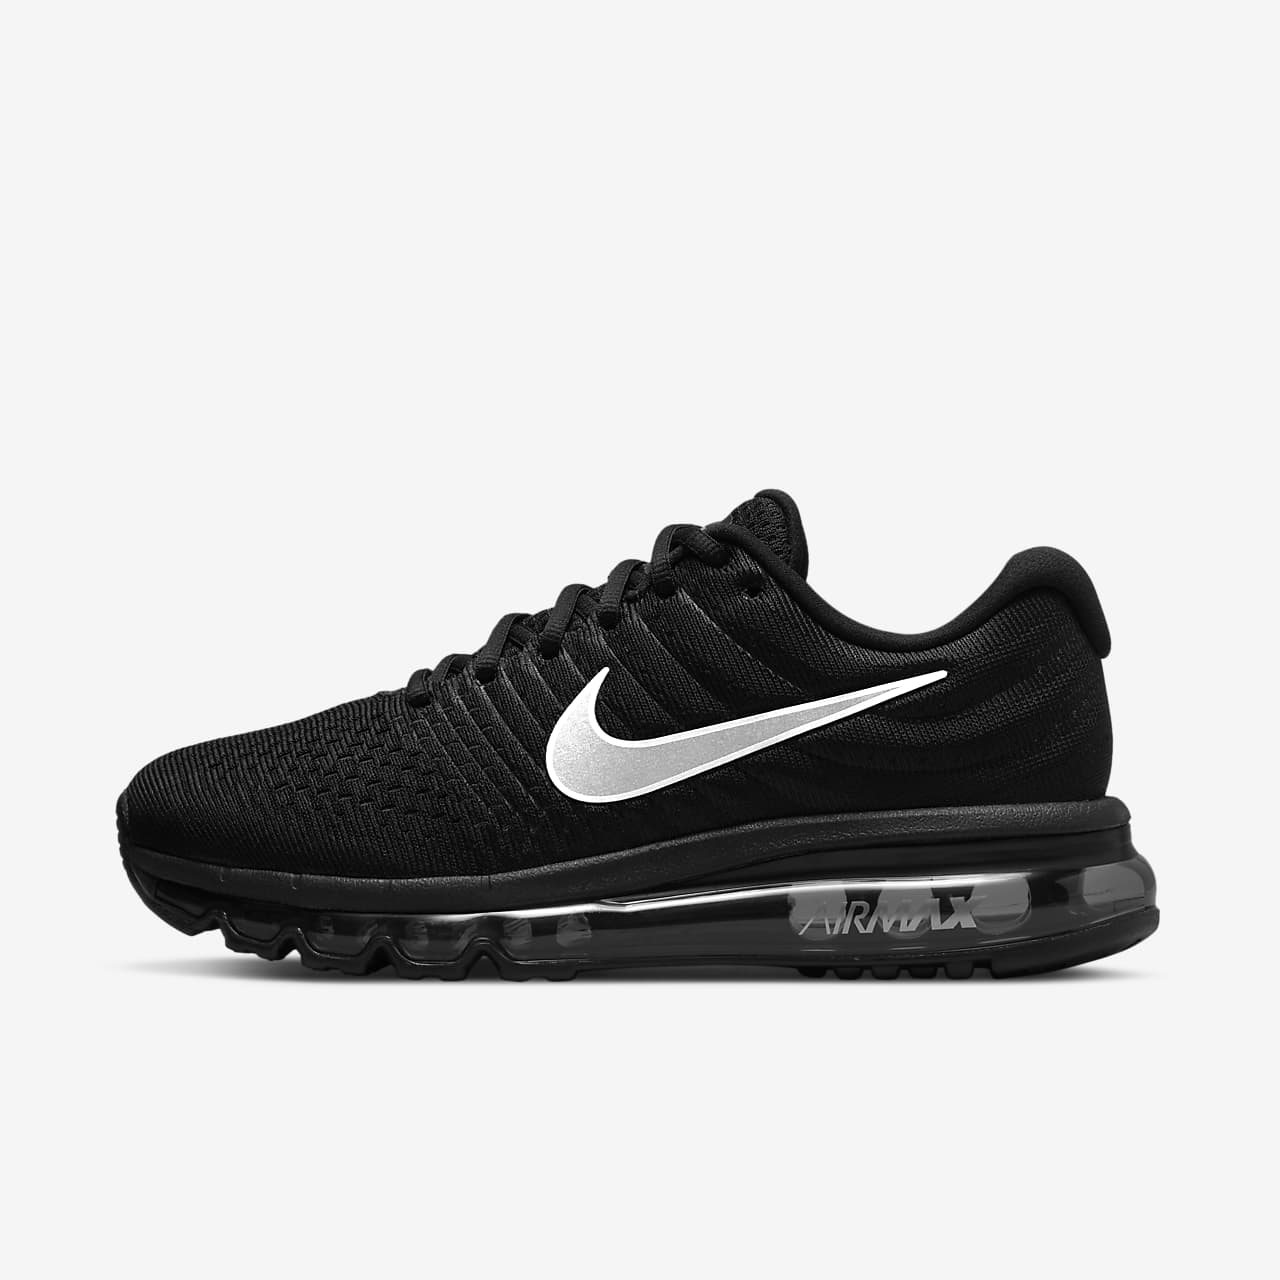 reputable site 0bb95 9bf81 Nike Air Max 2017 Zapatillas - Mujer